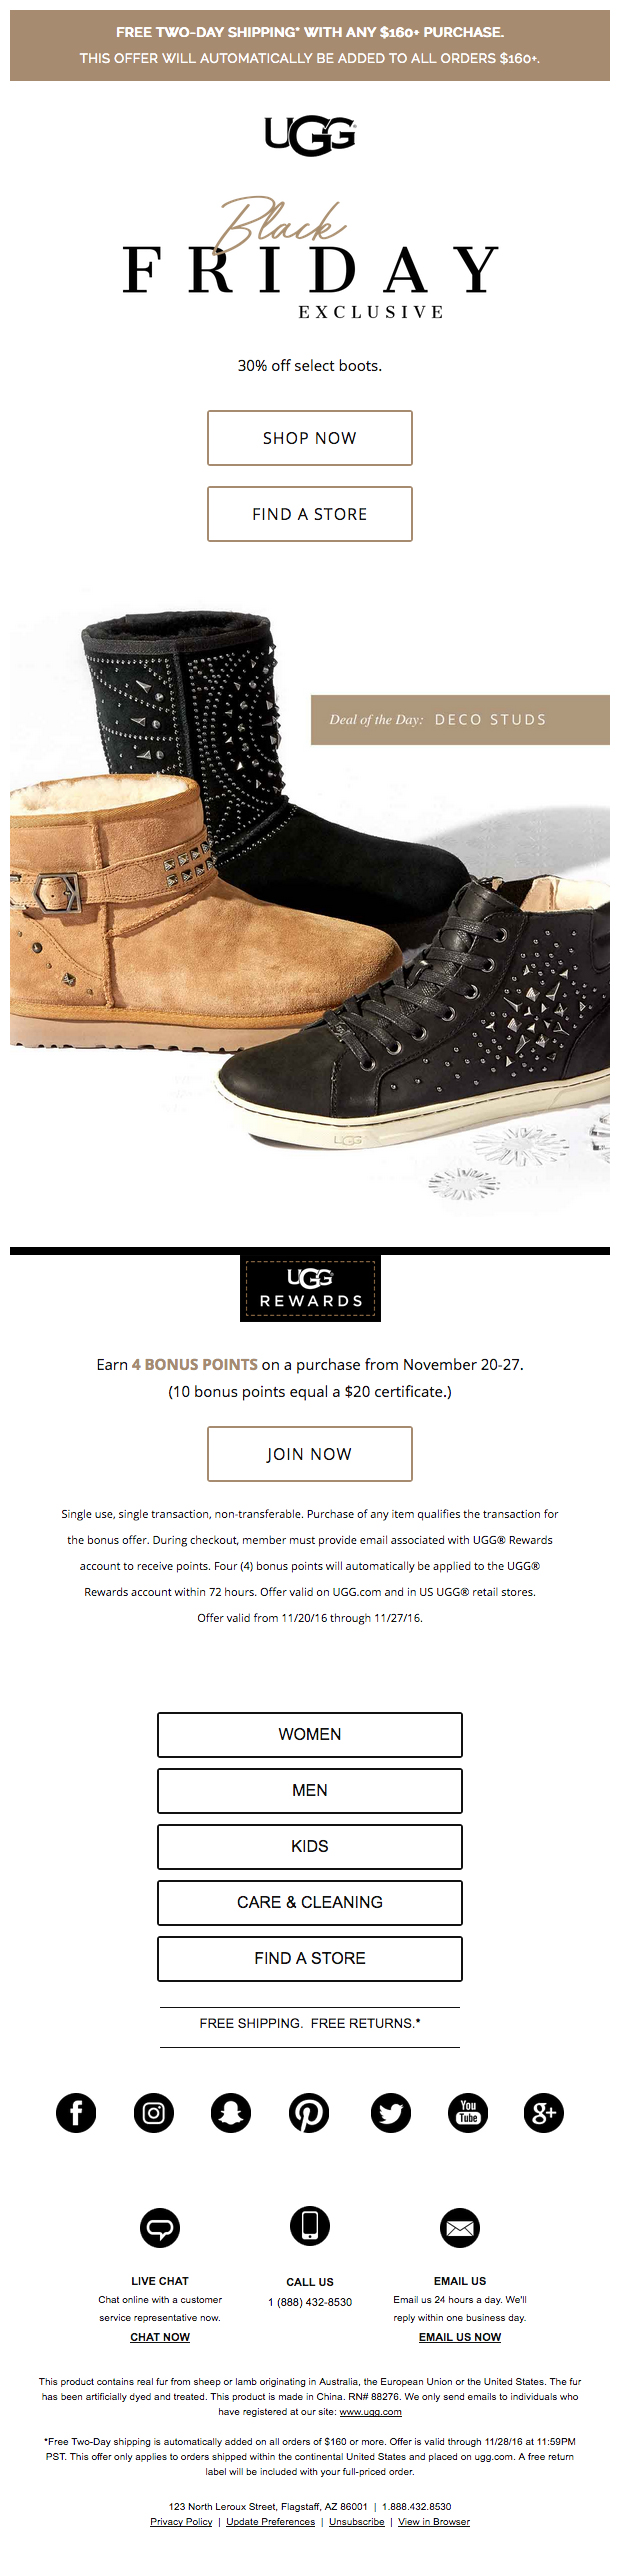 UGG Friday Email